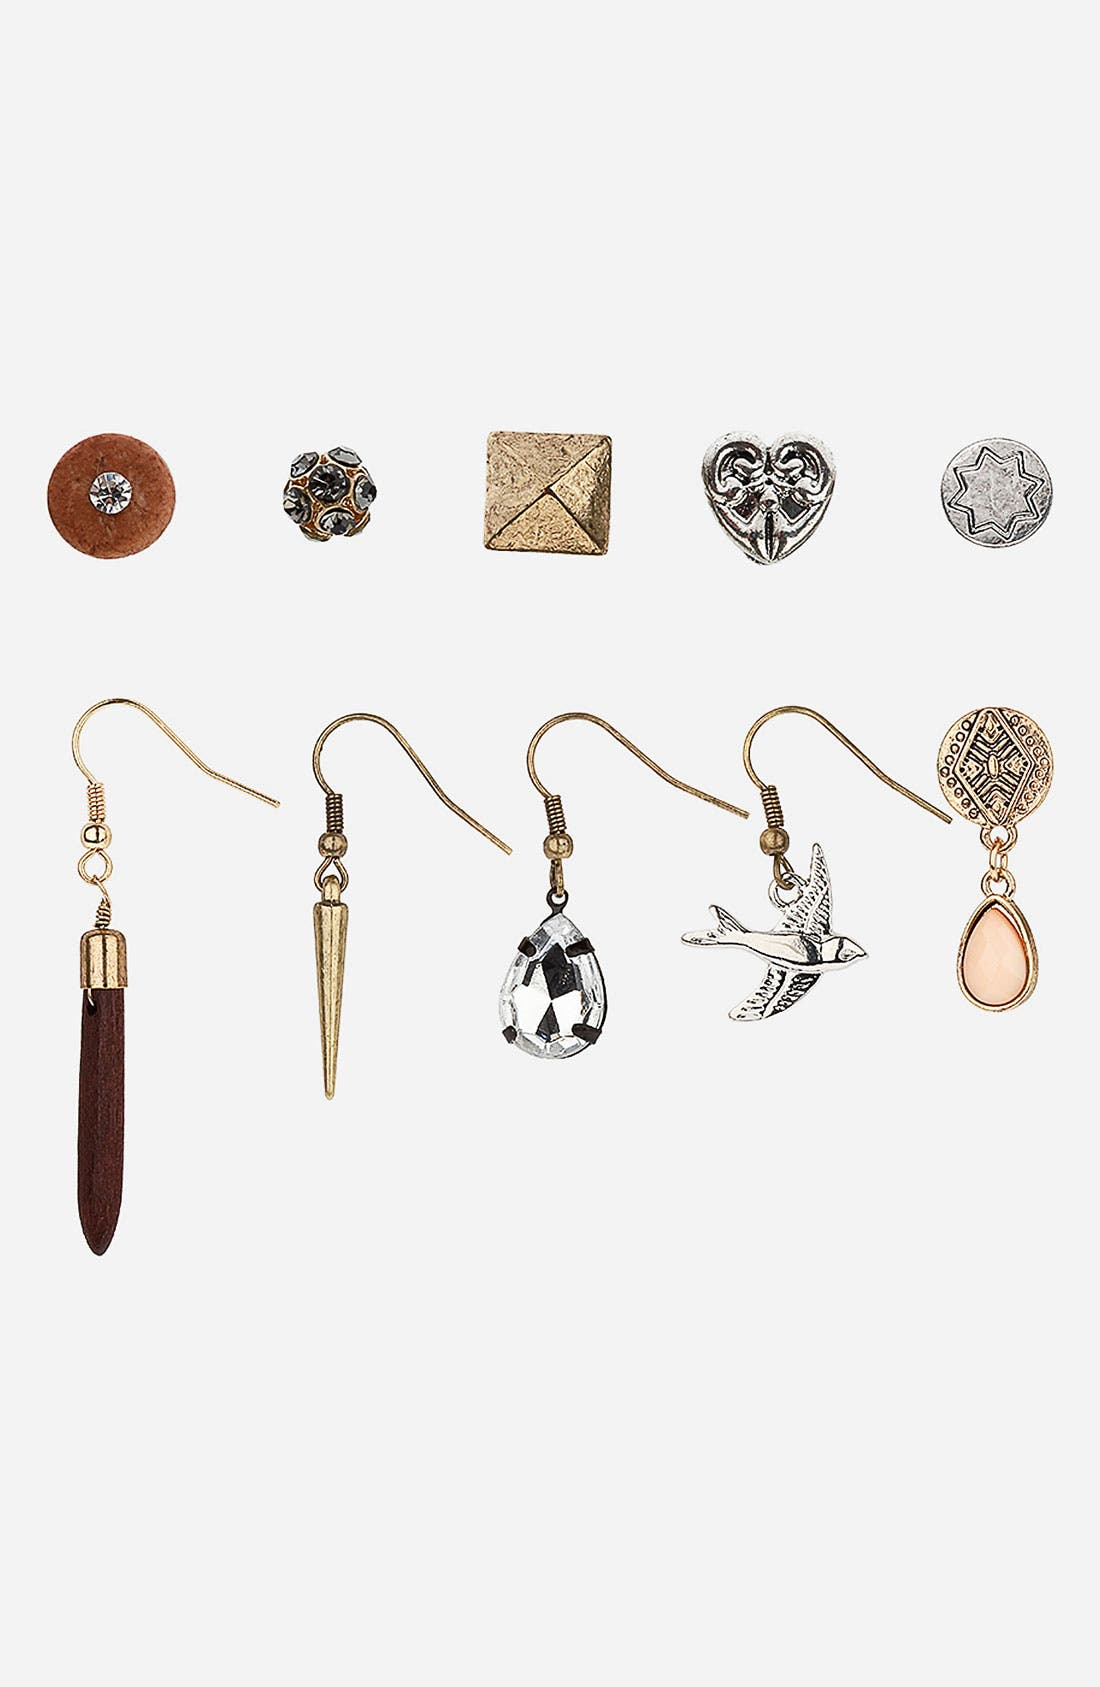 Alternate Image 1 Selected - Topshop 'Heart/Bird/Spike' Stud & French Wire Earrings (Set of 10)